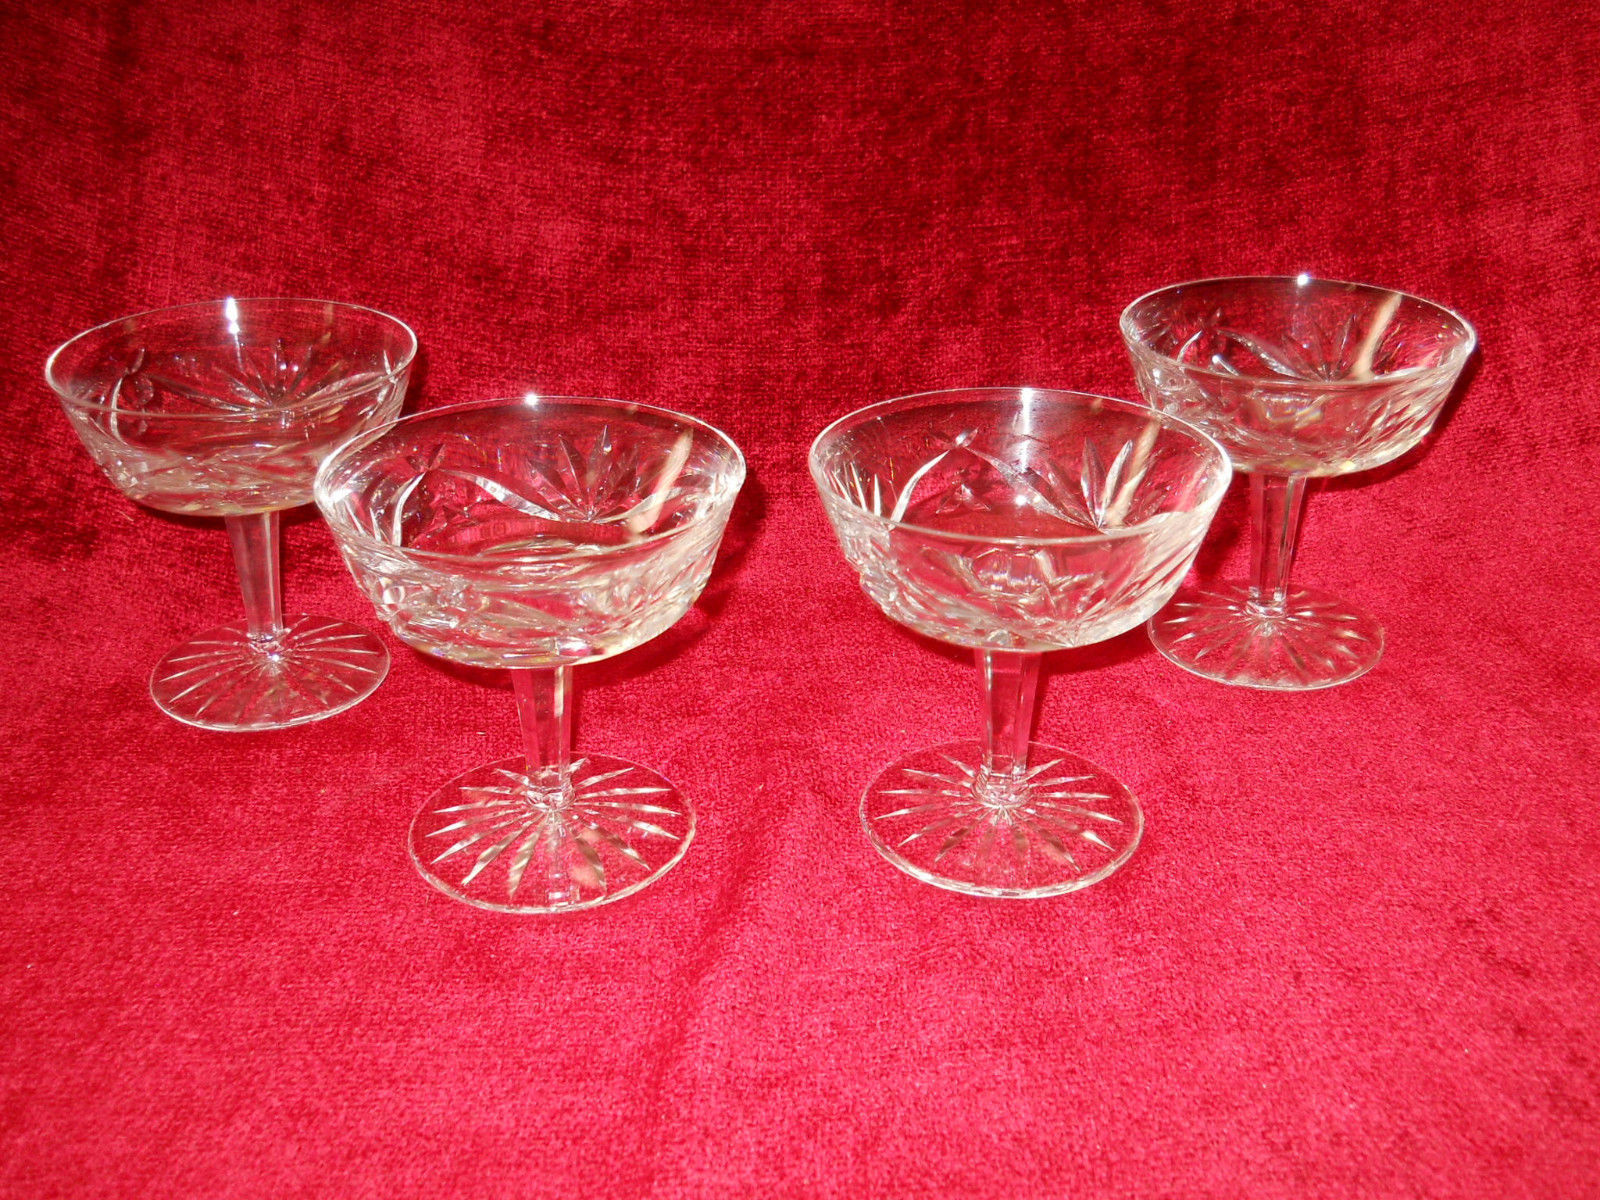 Waterford Ashling set of 4 champagne / sherbet